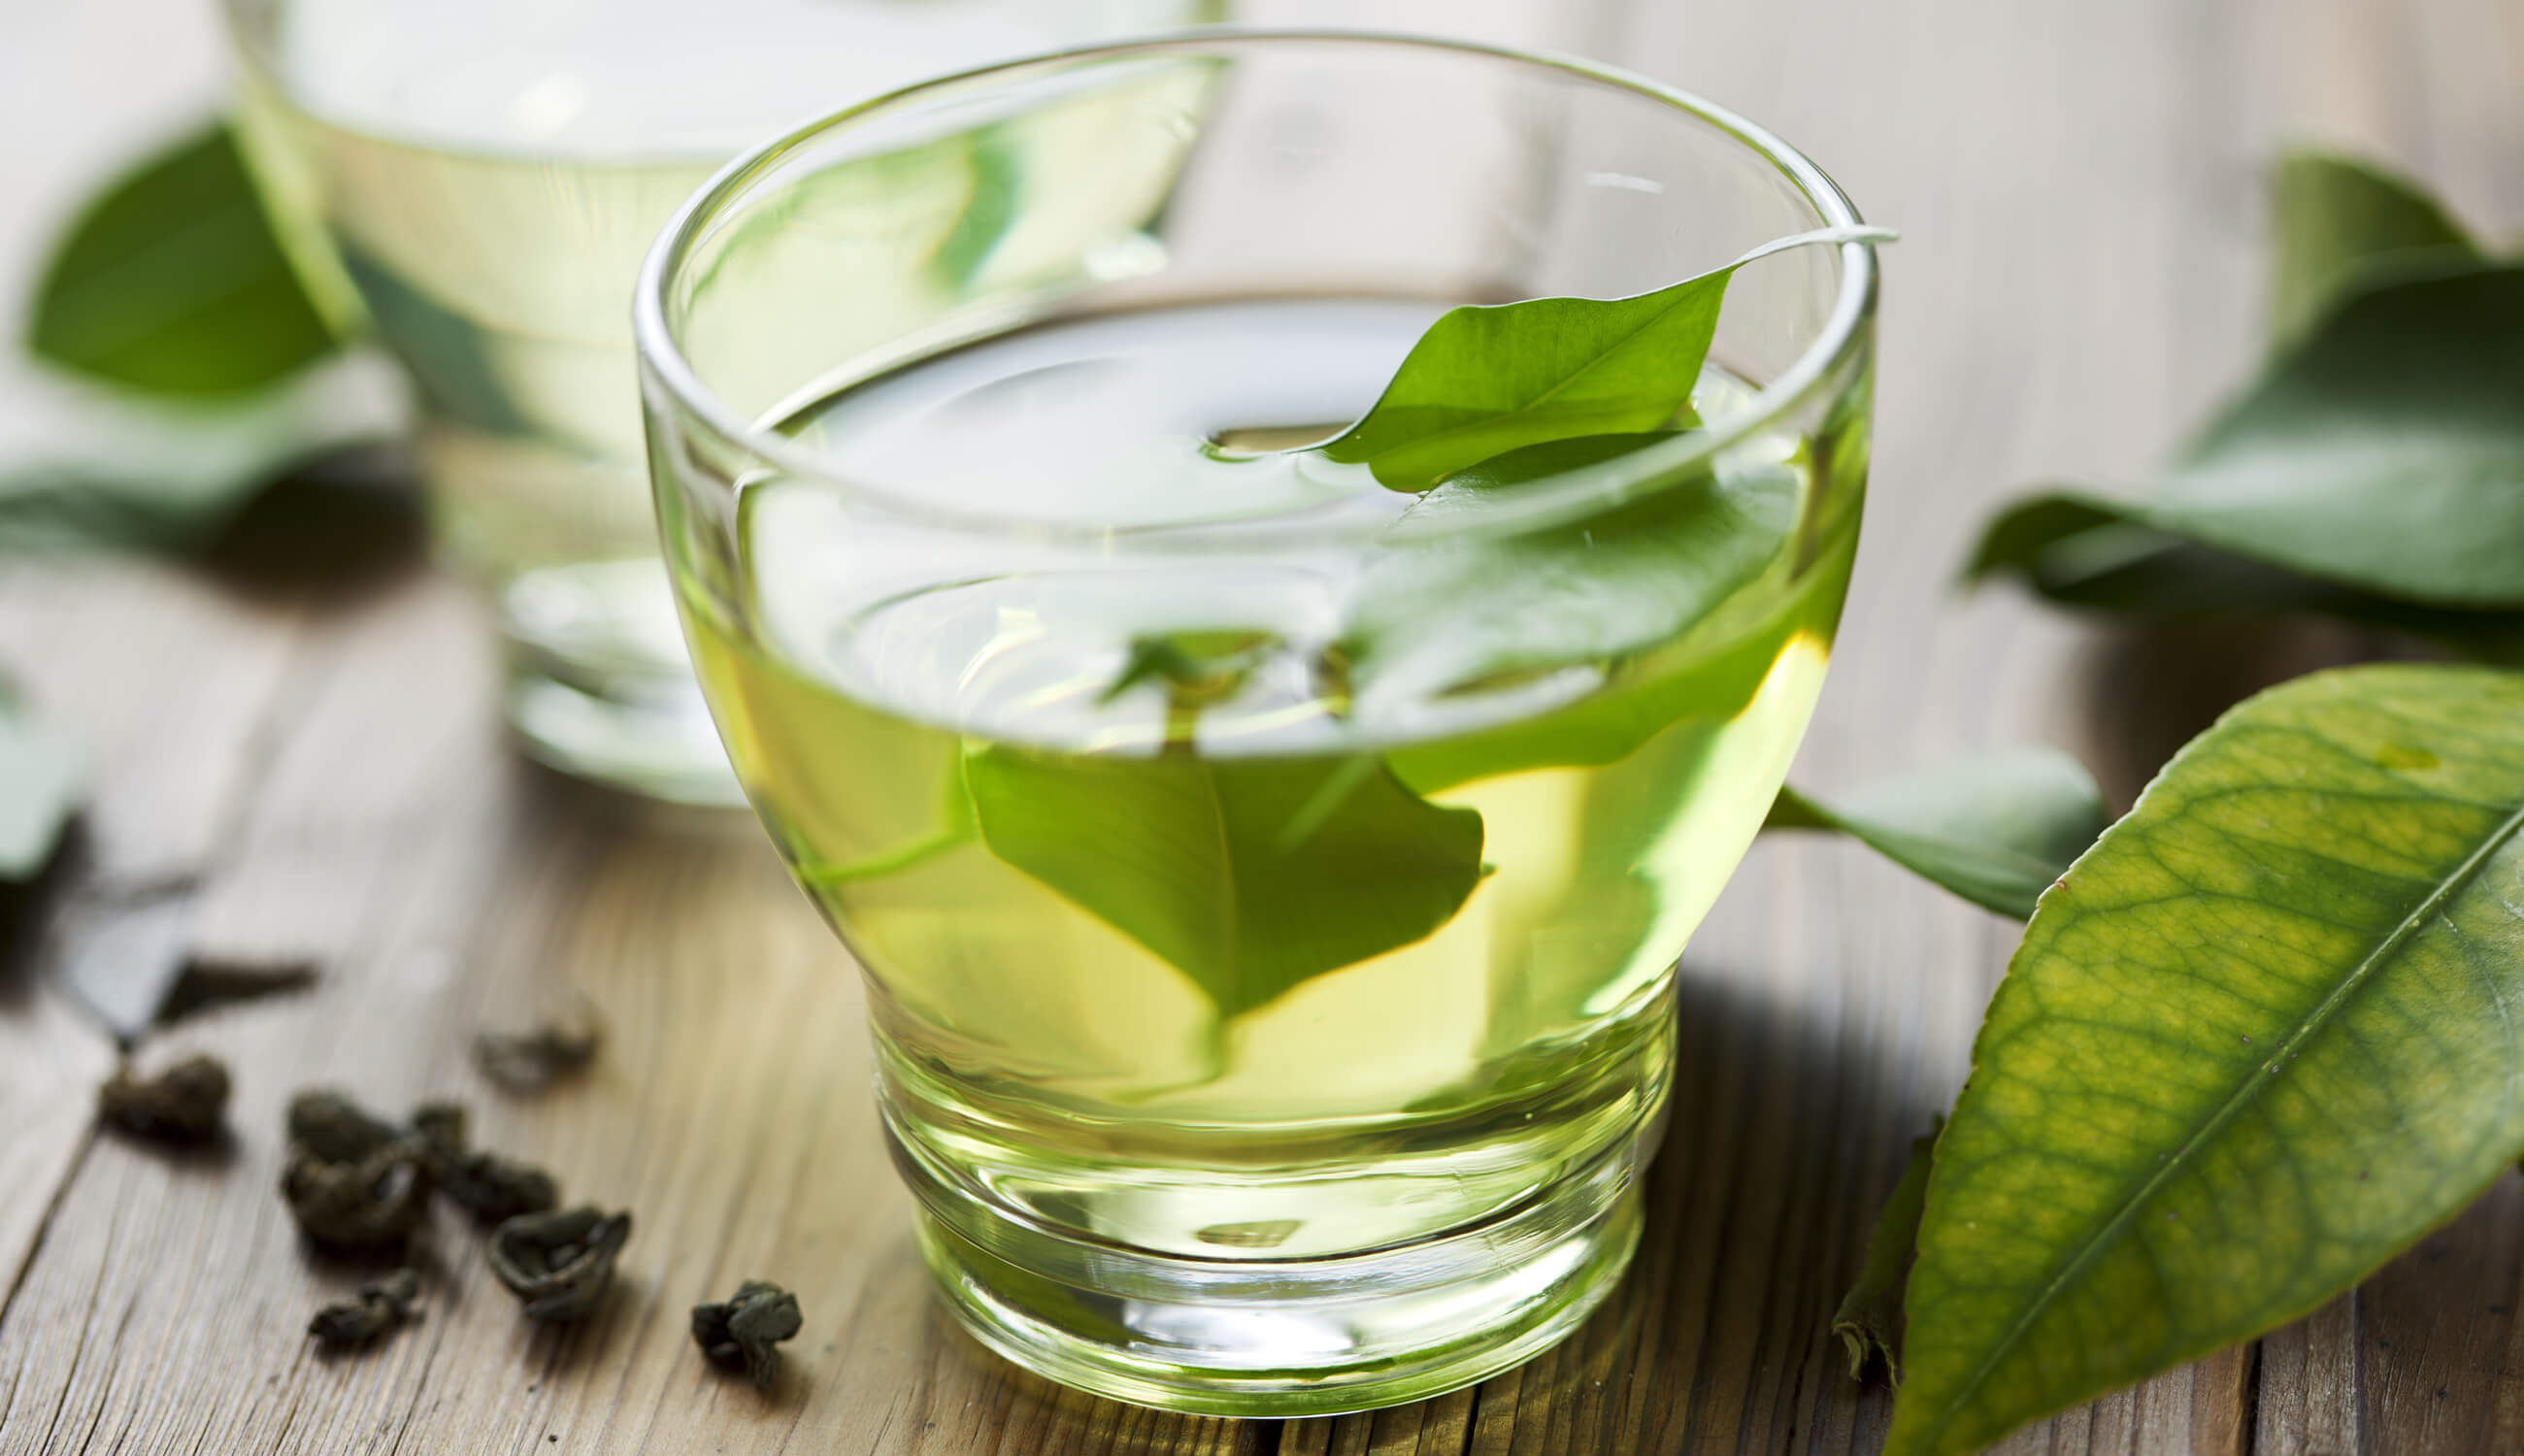 Green tea leaves in cup